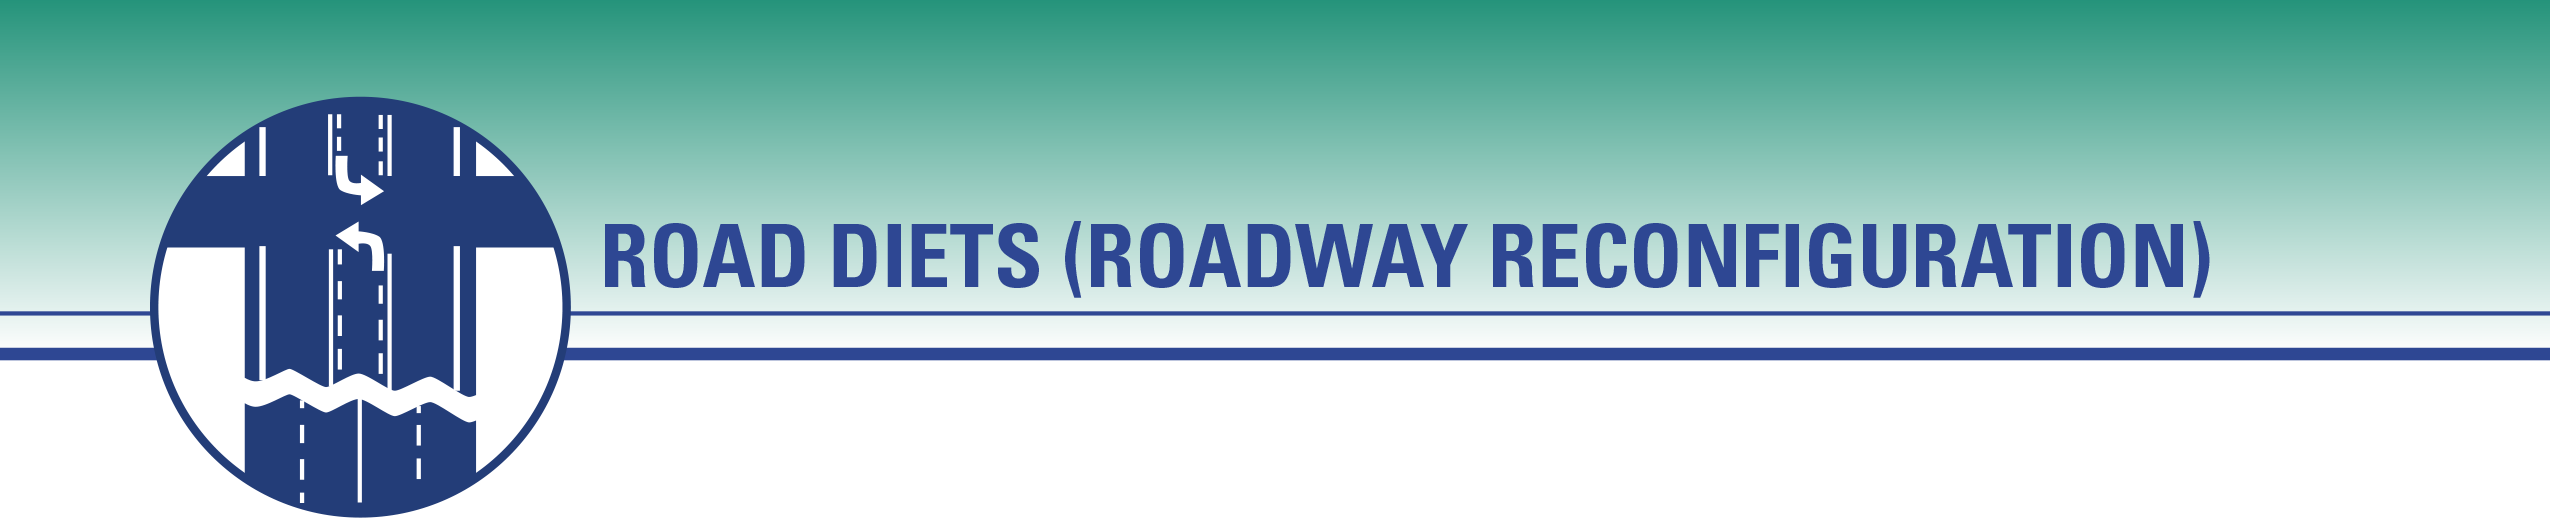 Road Diets (Roadway Reconfiguration)